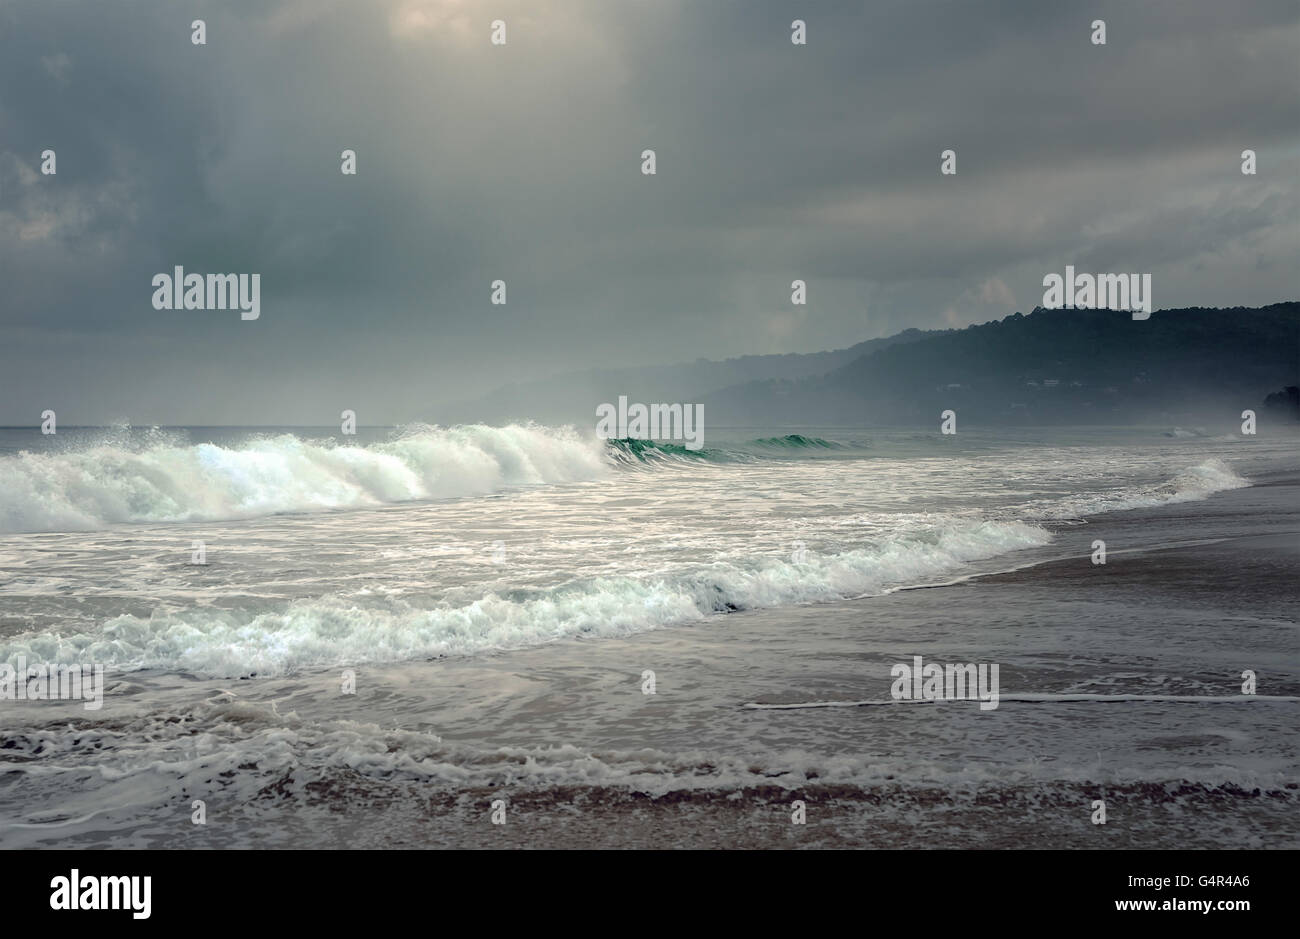 Tropical storm on the island of Phuket in Thailand - Stock Image